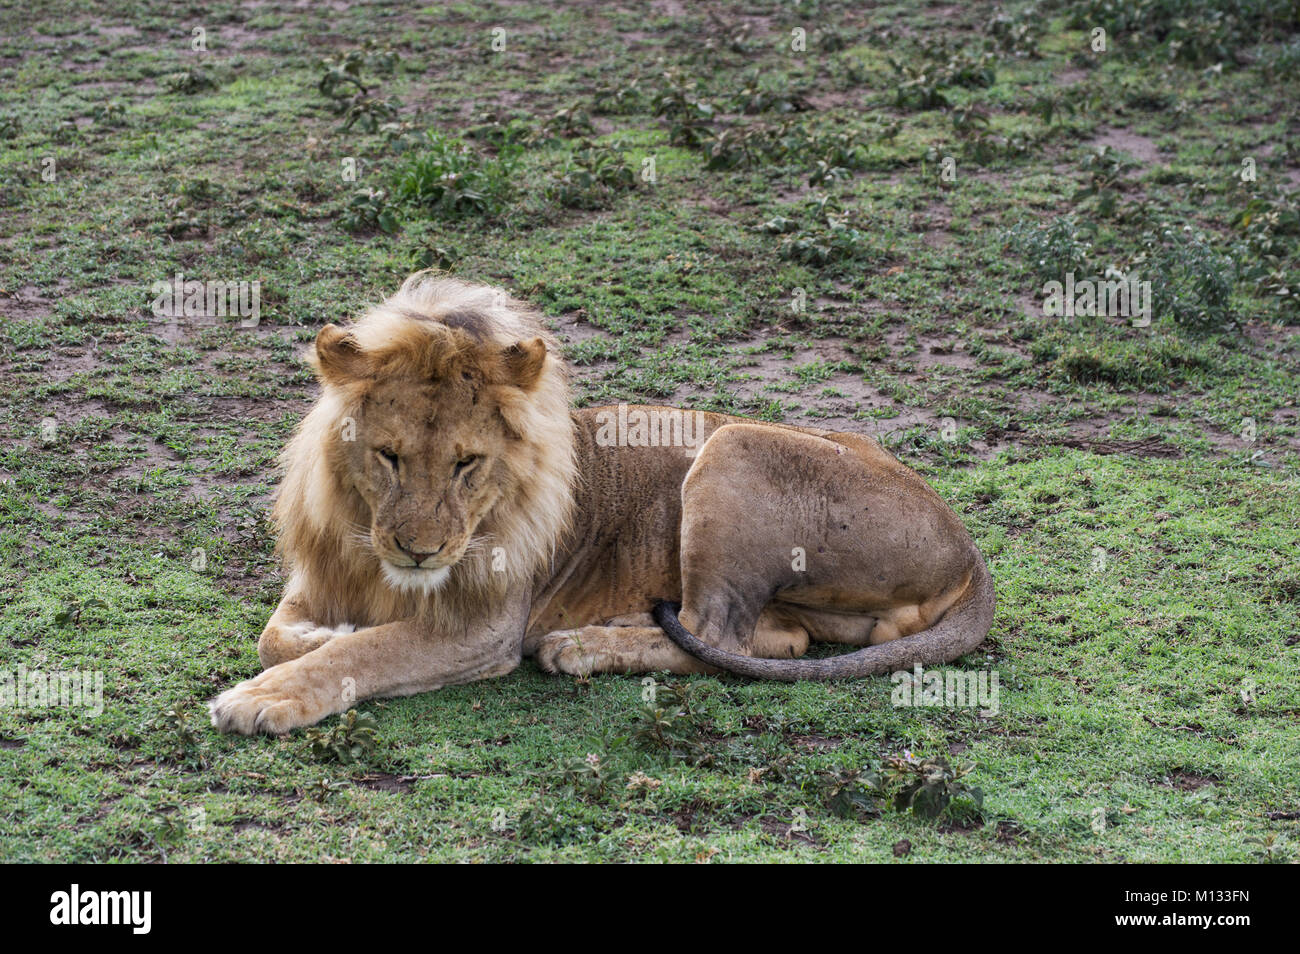 Male lion, King of the jungle, in the Serengetti in Tanzania on a lush green bed with furry paws and mane - Stock Image